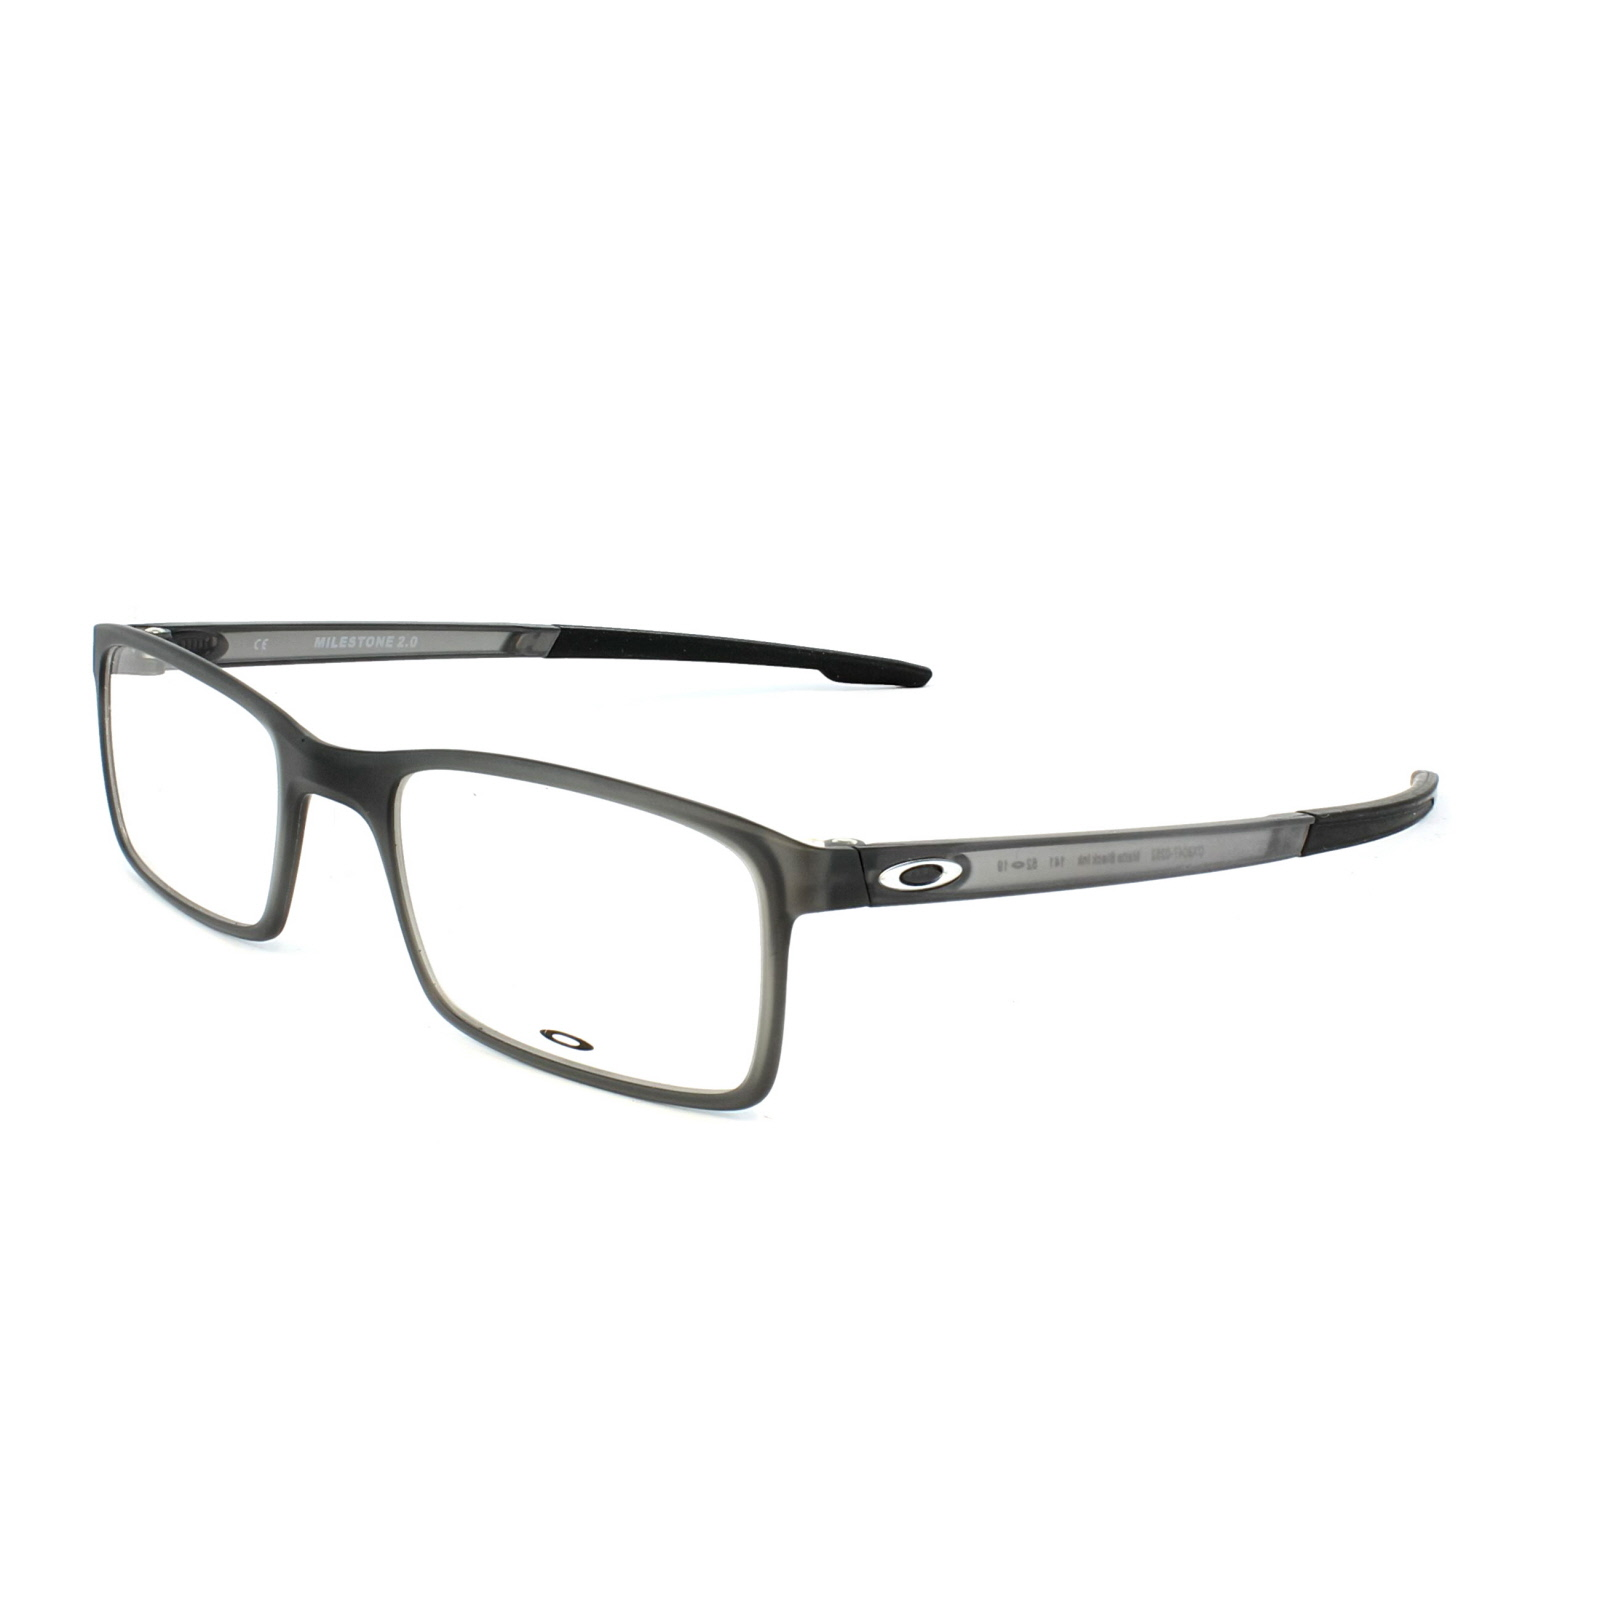 8fb159e79b Sentinel Oakley Glasses Frames Milestone 2.0 OX8047-02 Matt Black Ink